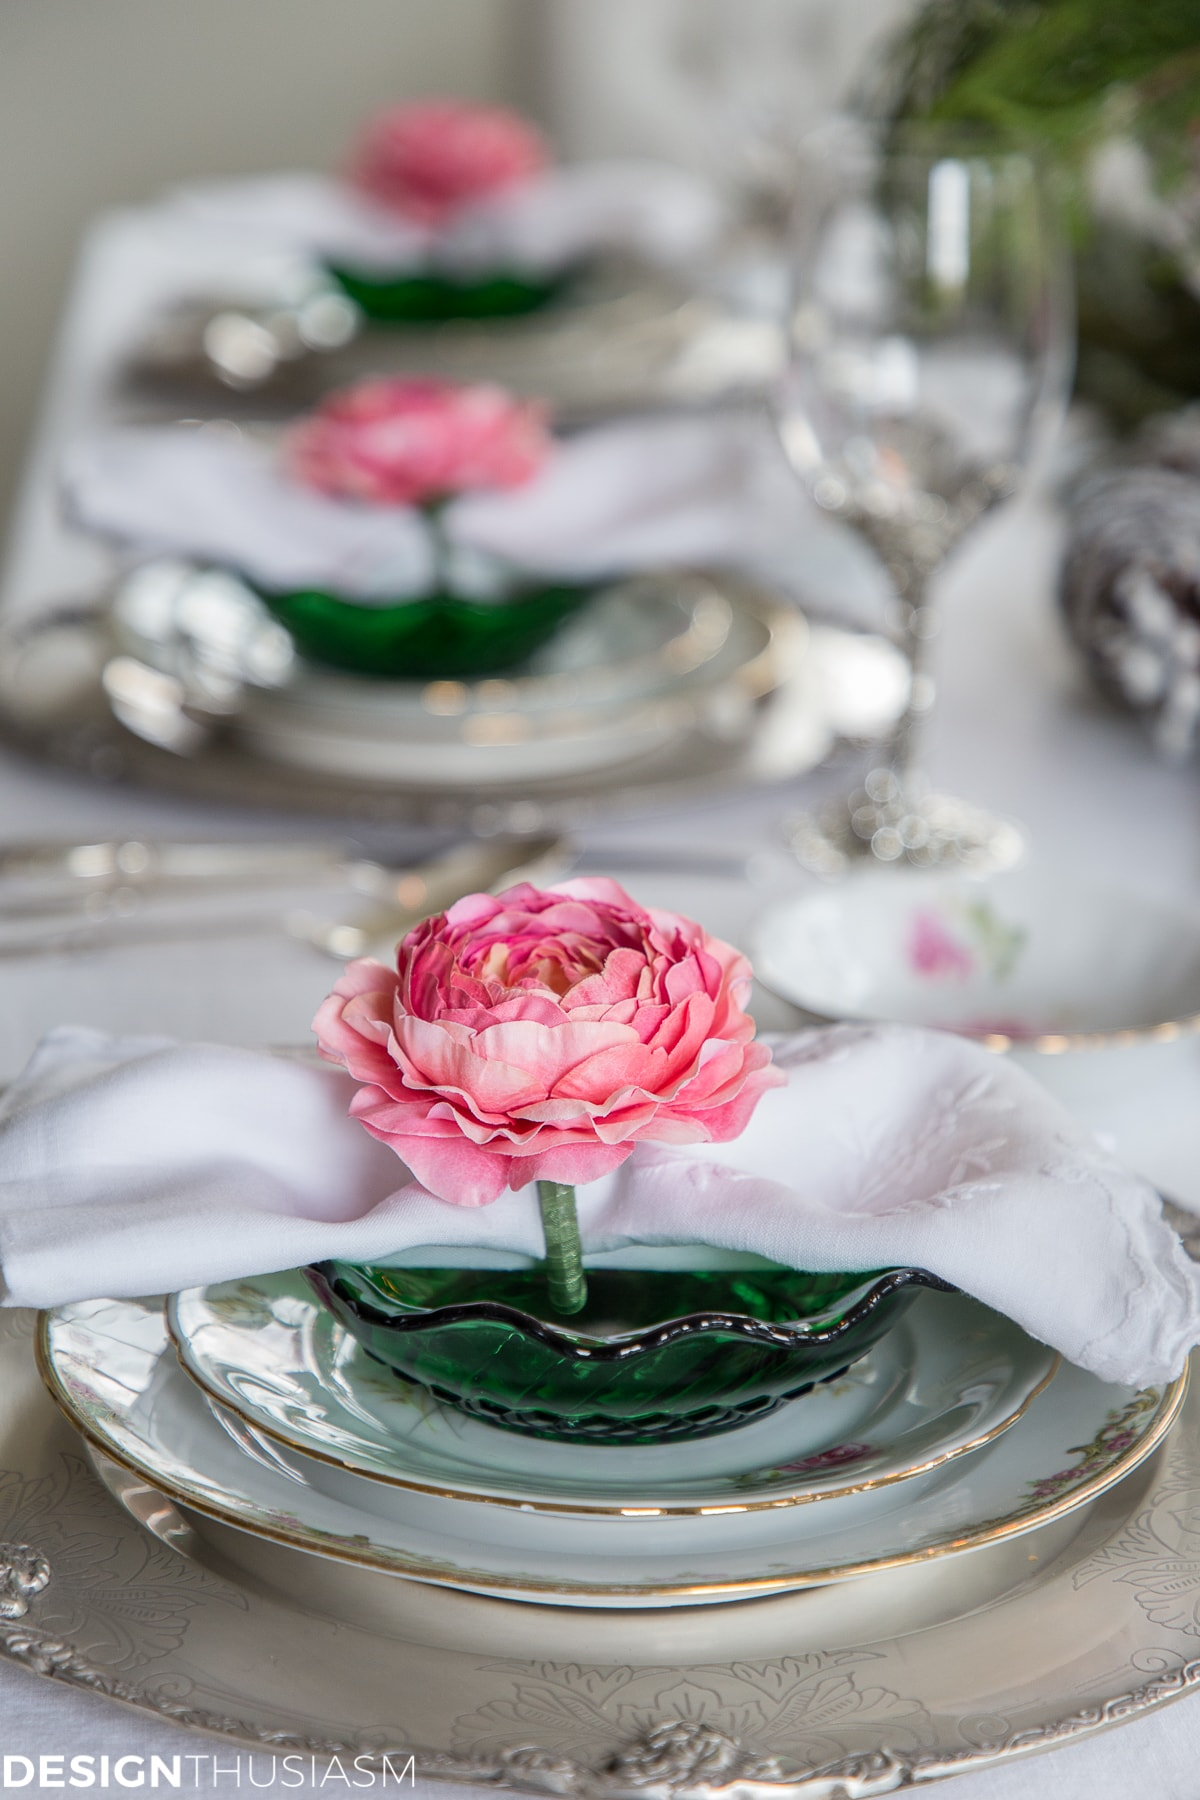 6 Ways to Create Elegant Christmas Table Settings in the Kitchen